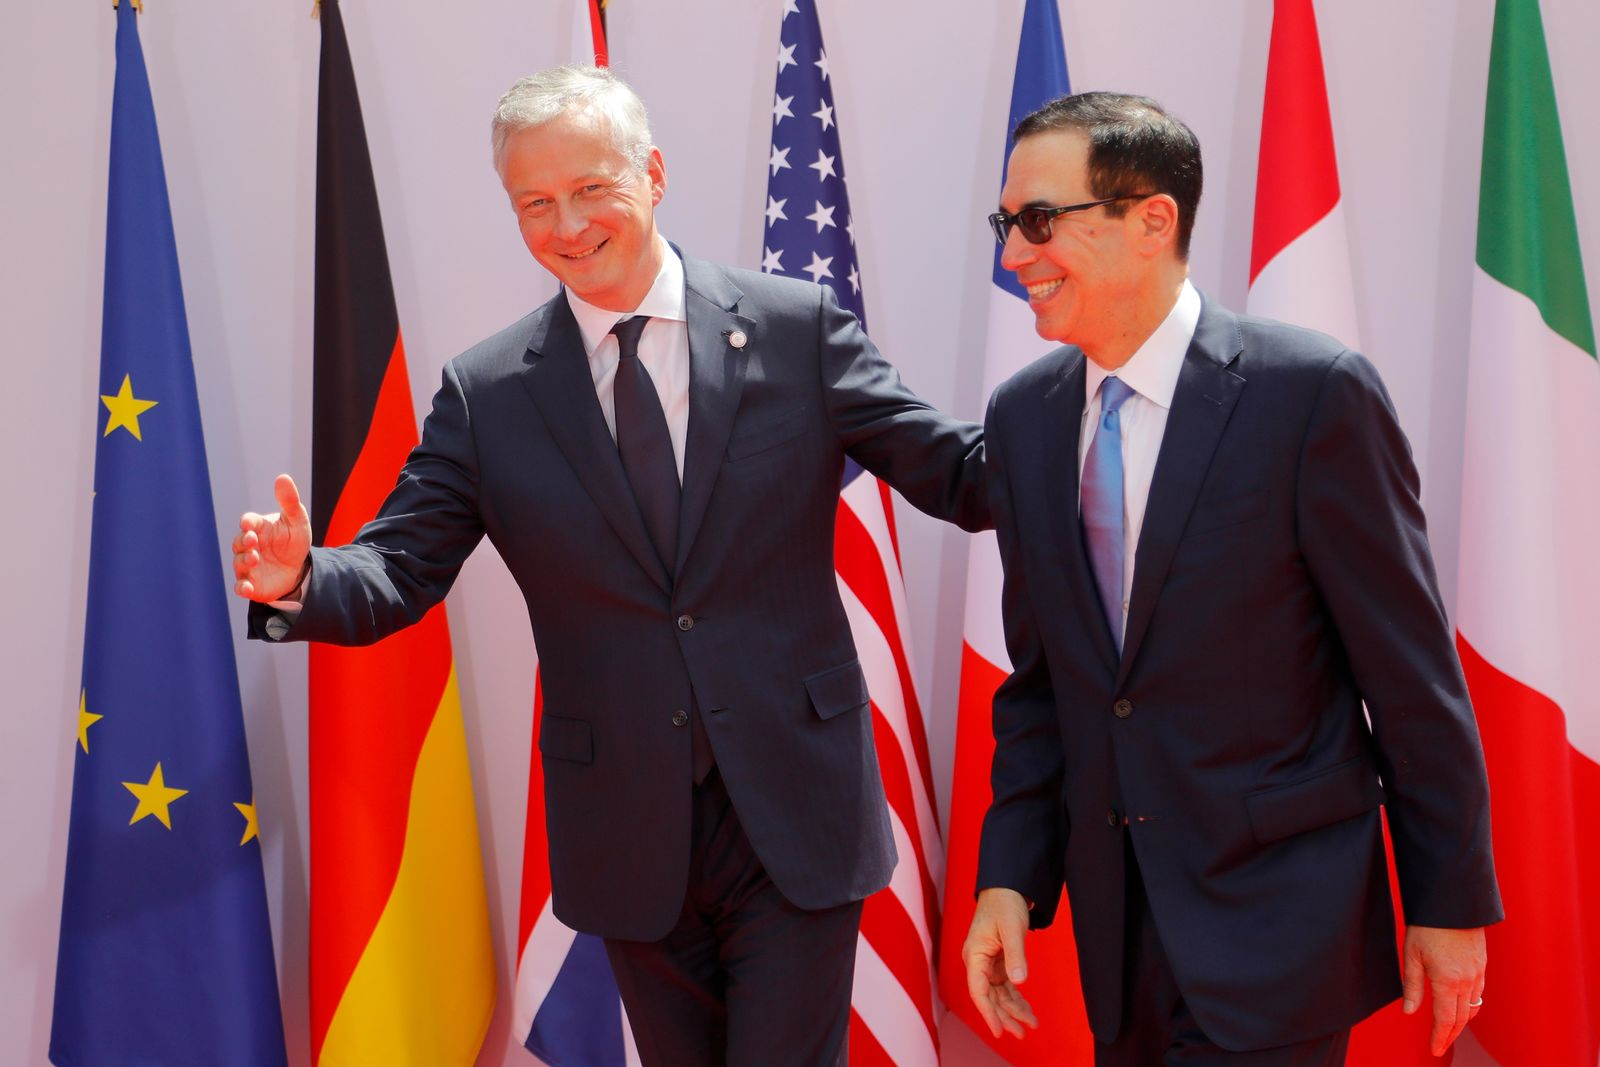 French Finance Minister Bruno Le Maire, left, welcomes Treasury Secretary Steve Mnuchin at the G-7 Finance Wednesday July 17, 2019 in Chantilly, north of Paris. (AP Photo/Michel Euler)